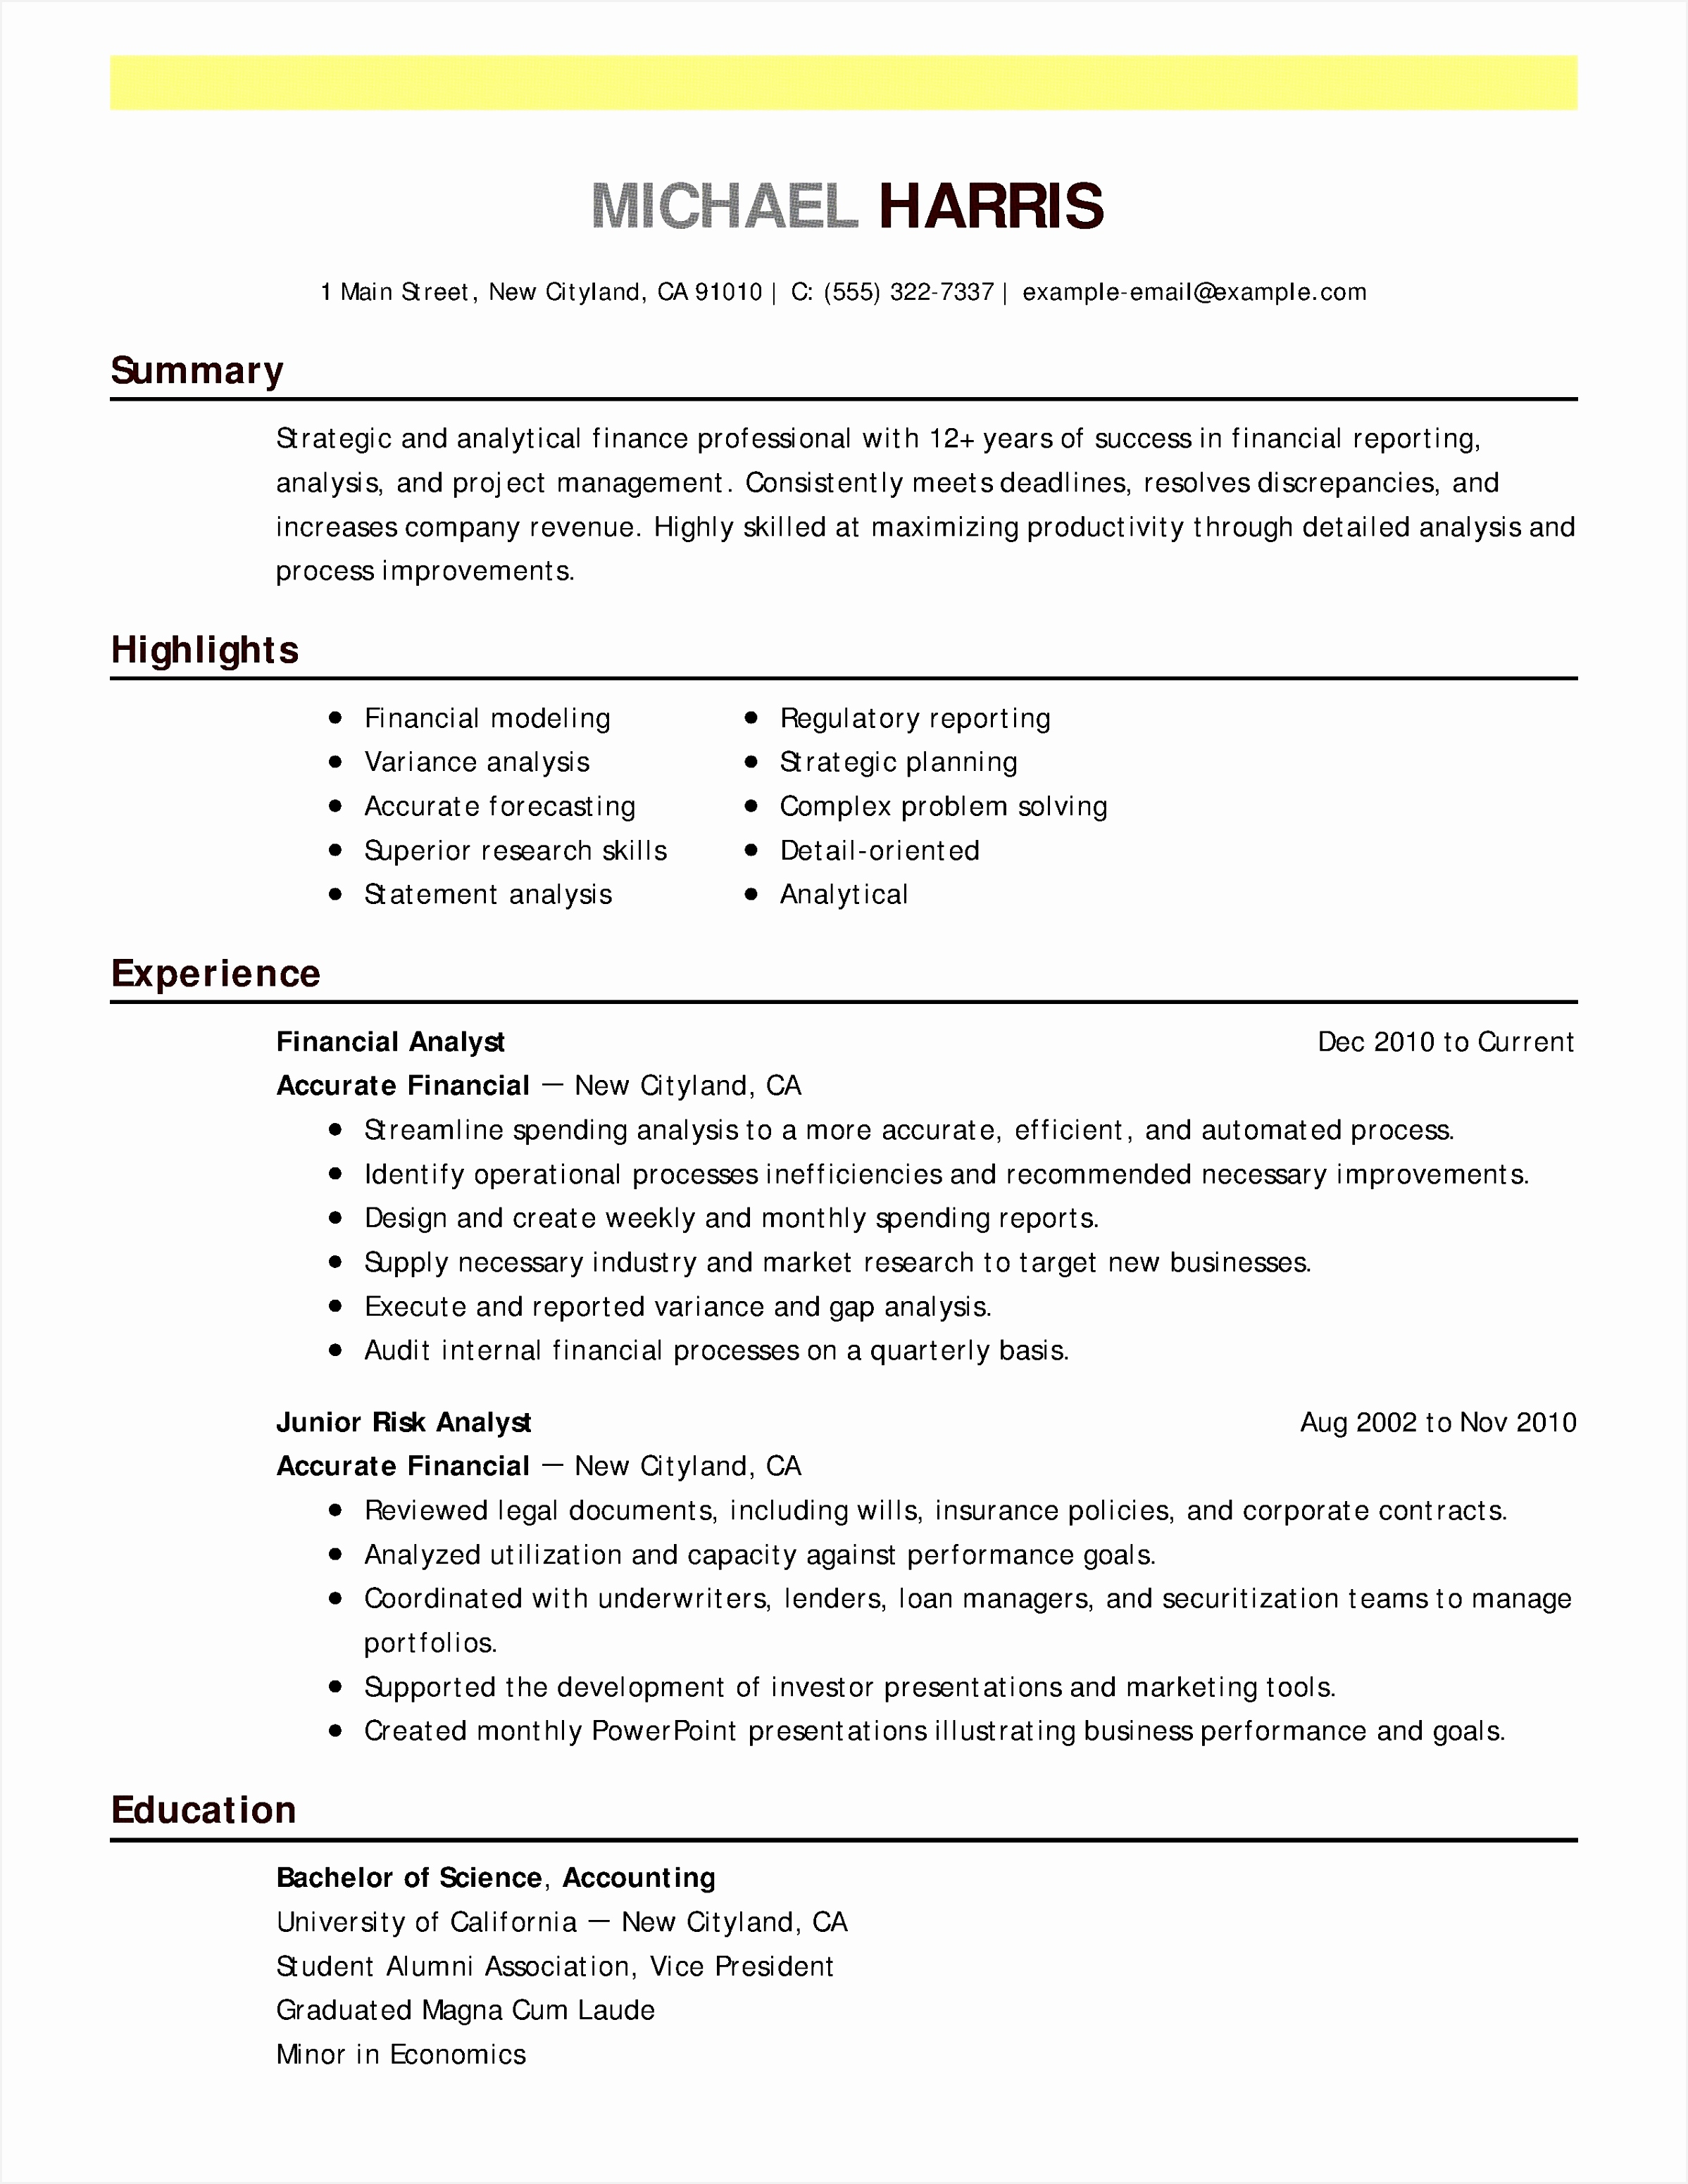 Resume Samples Vp Marketing Valid American Resume Sample New Student Resume 0d Wallpapers 42 Awesome 31022397sjHgb